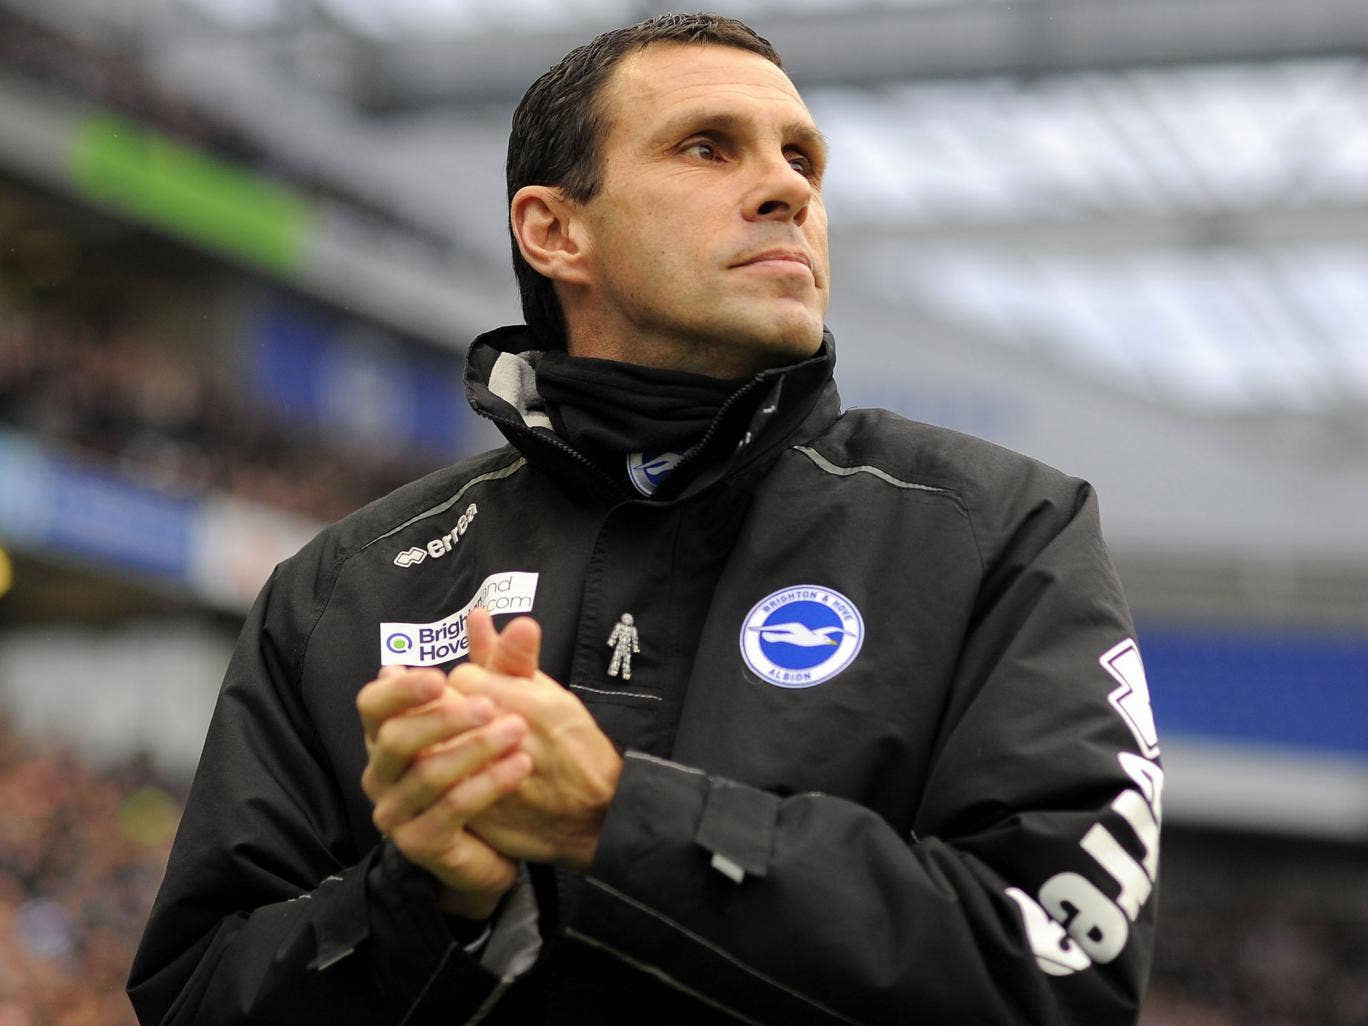 Gus Poyet's future is unclear after he was suspended by Brighton